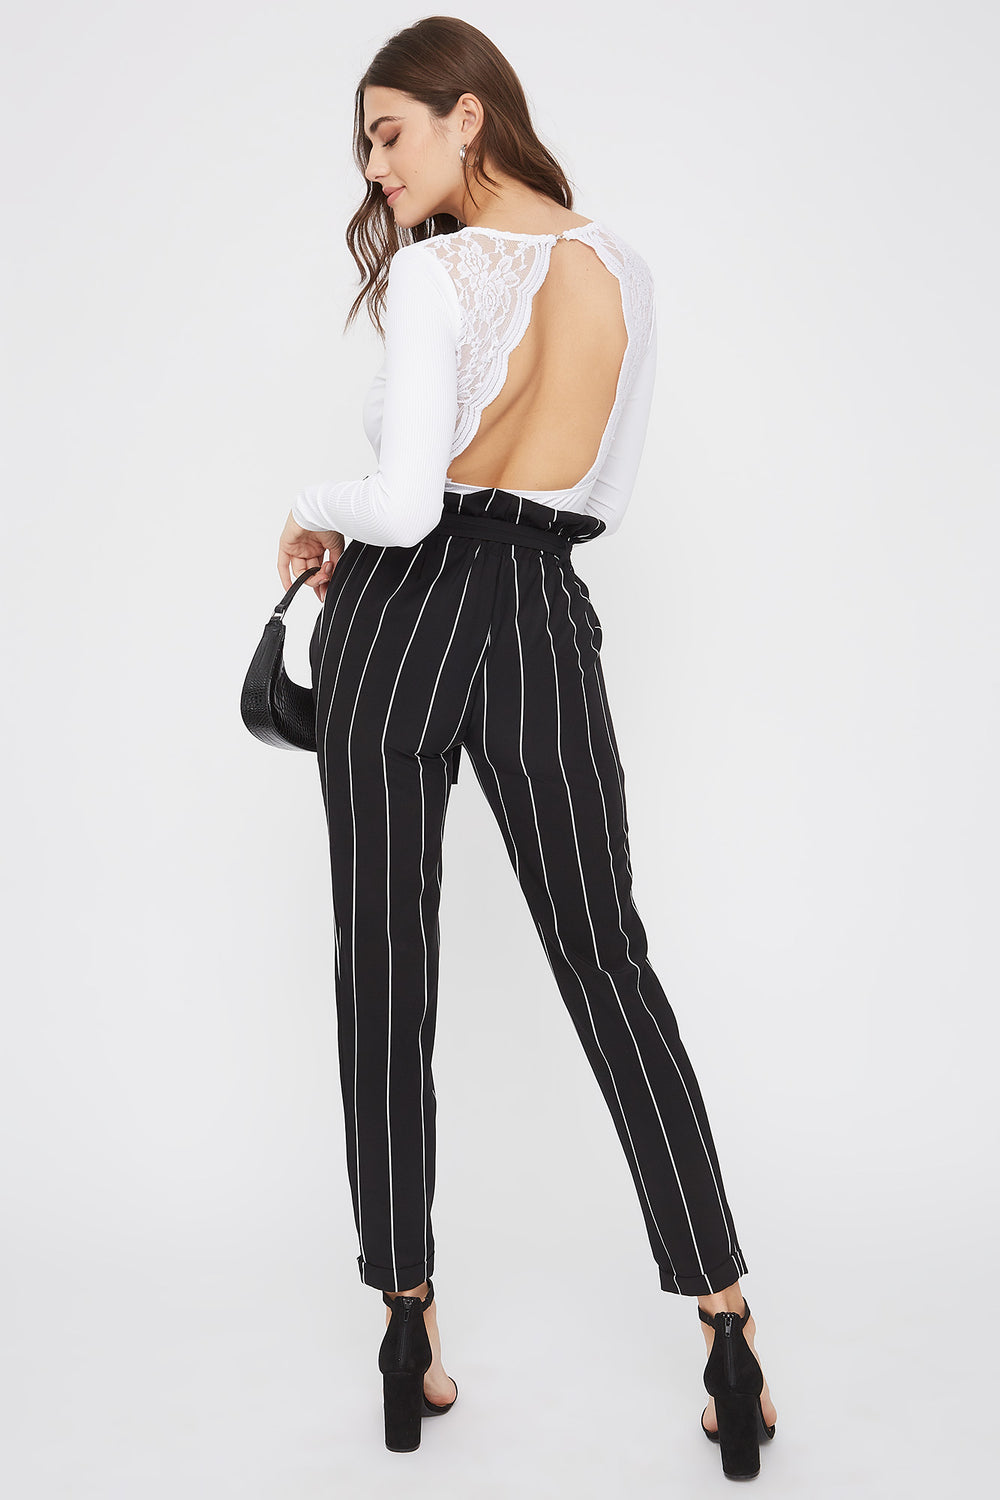 Self Belted Pull-On Paperbag Pant Black With White